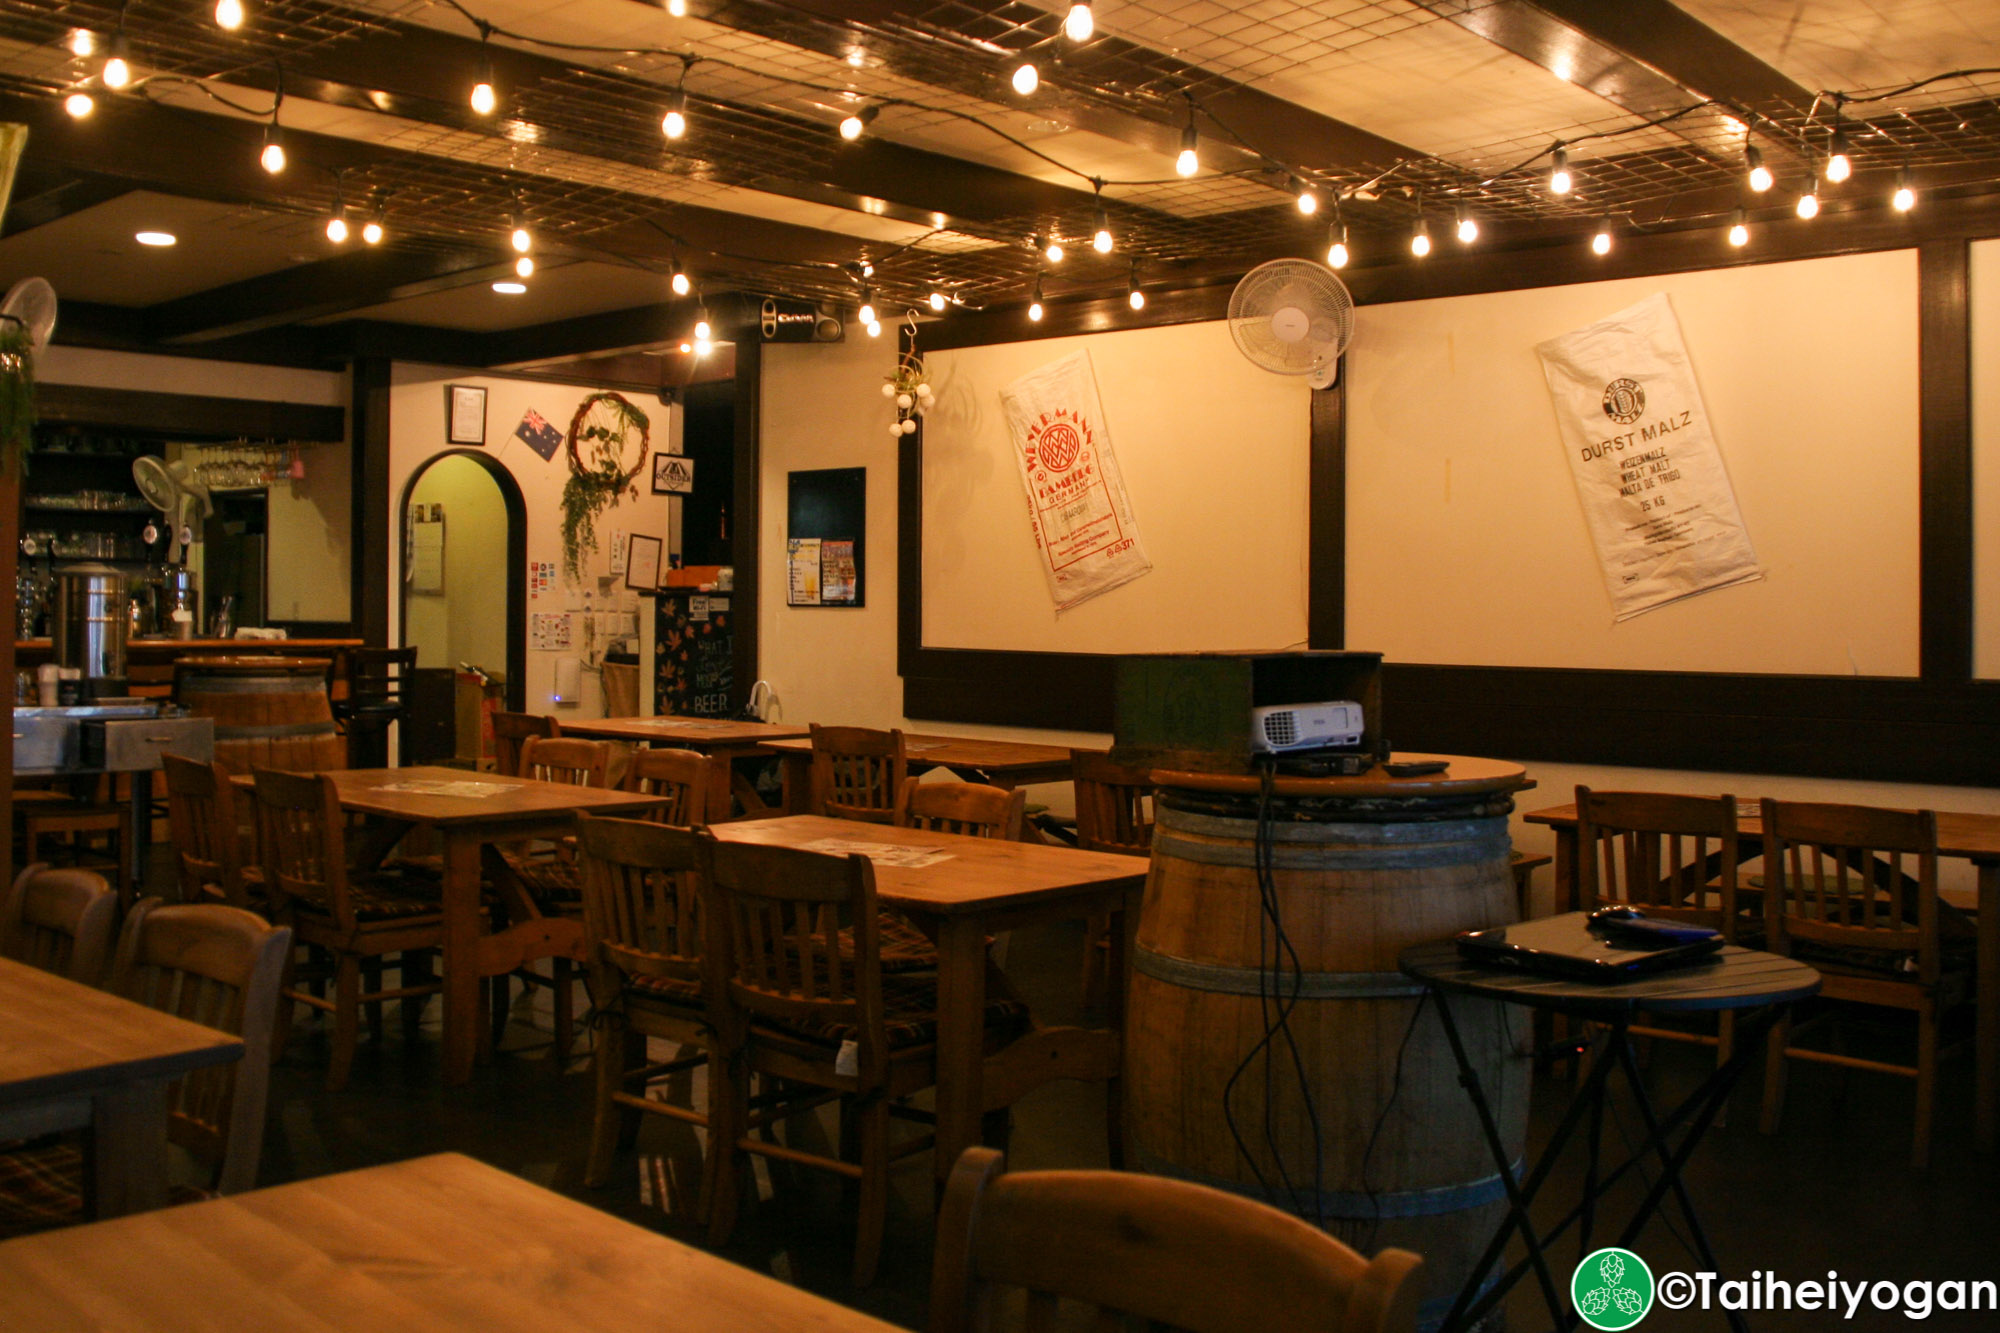 Hops & Herbs - Interior - Table Seating